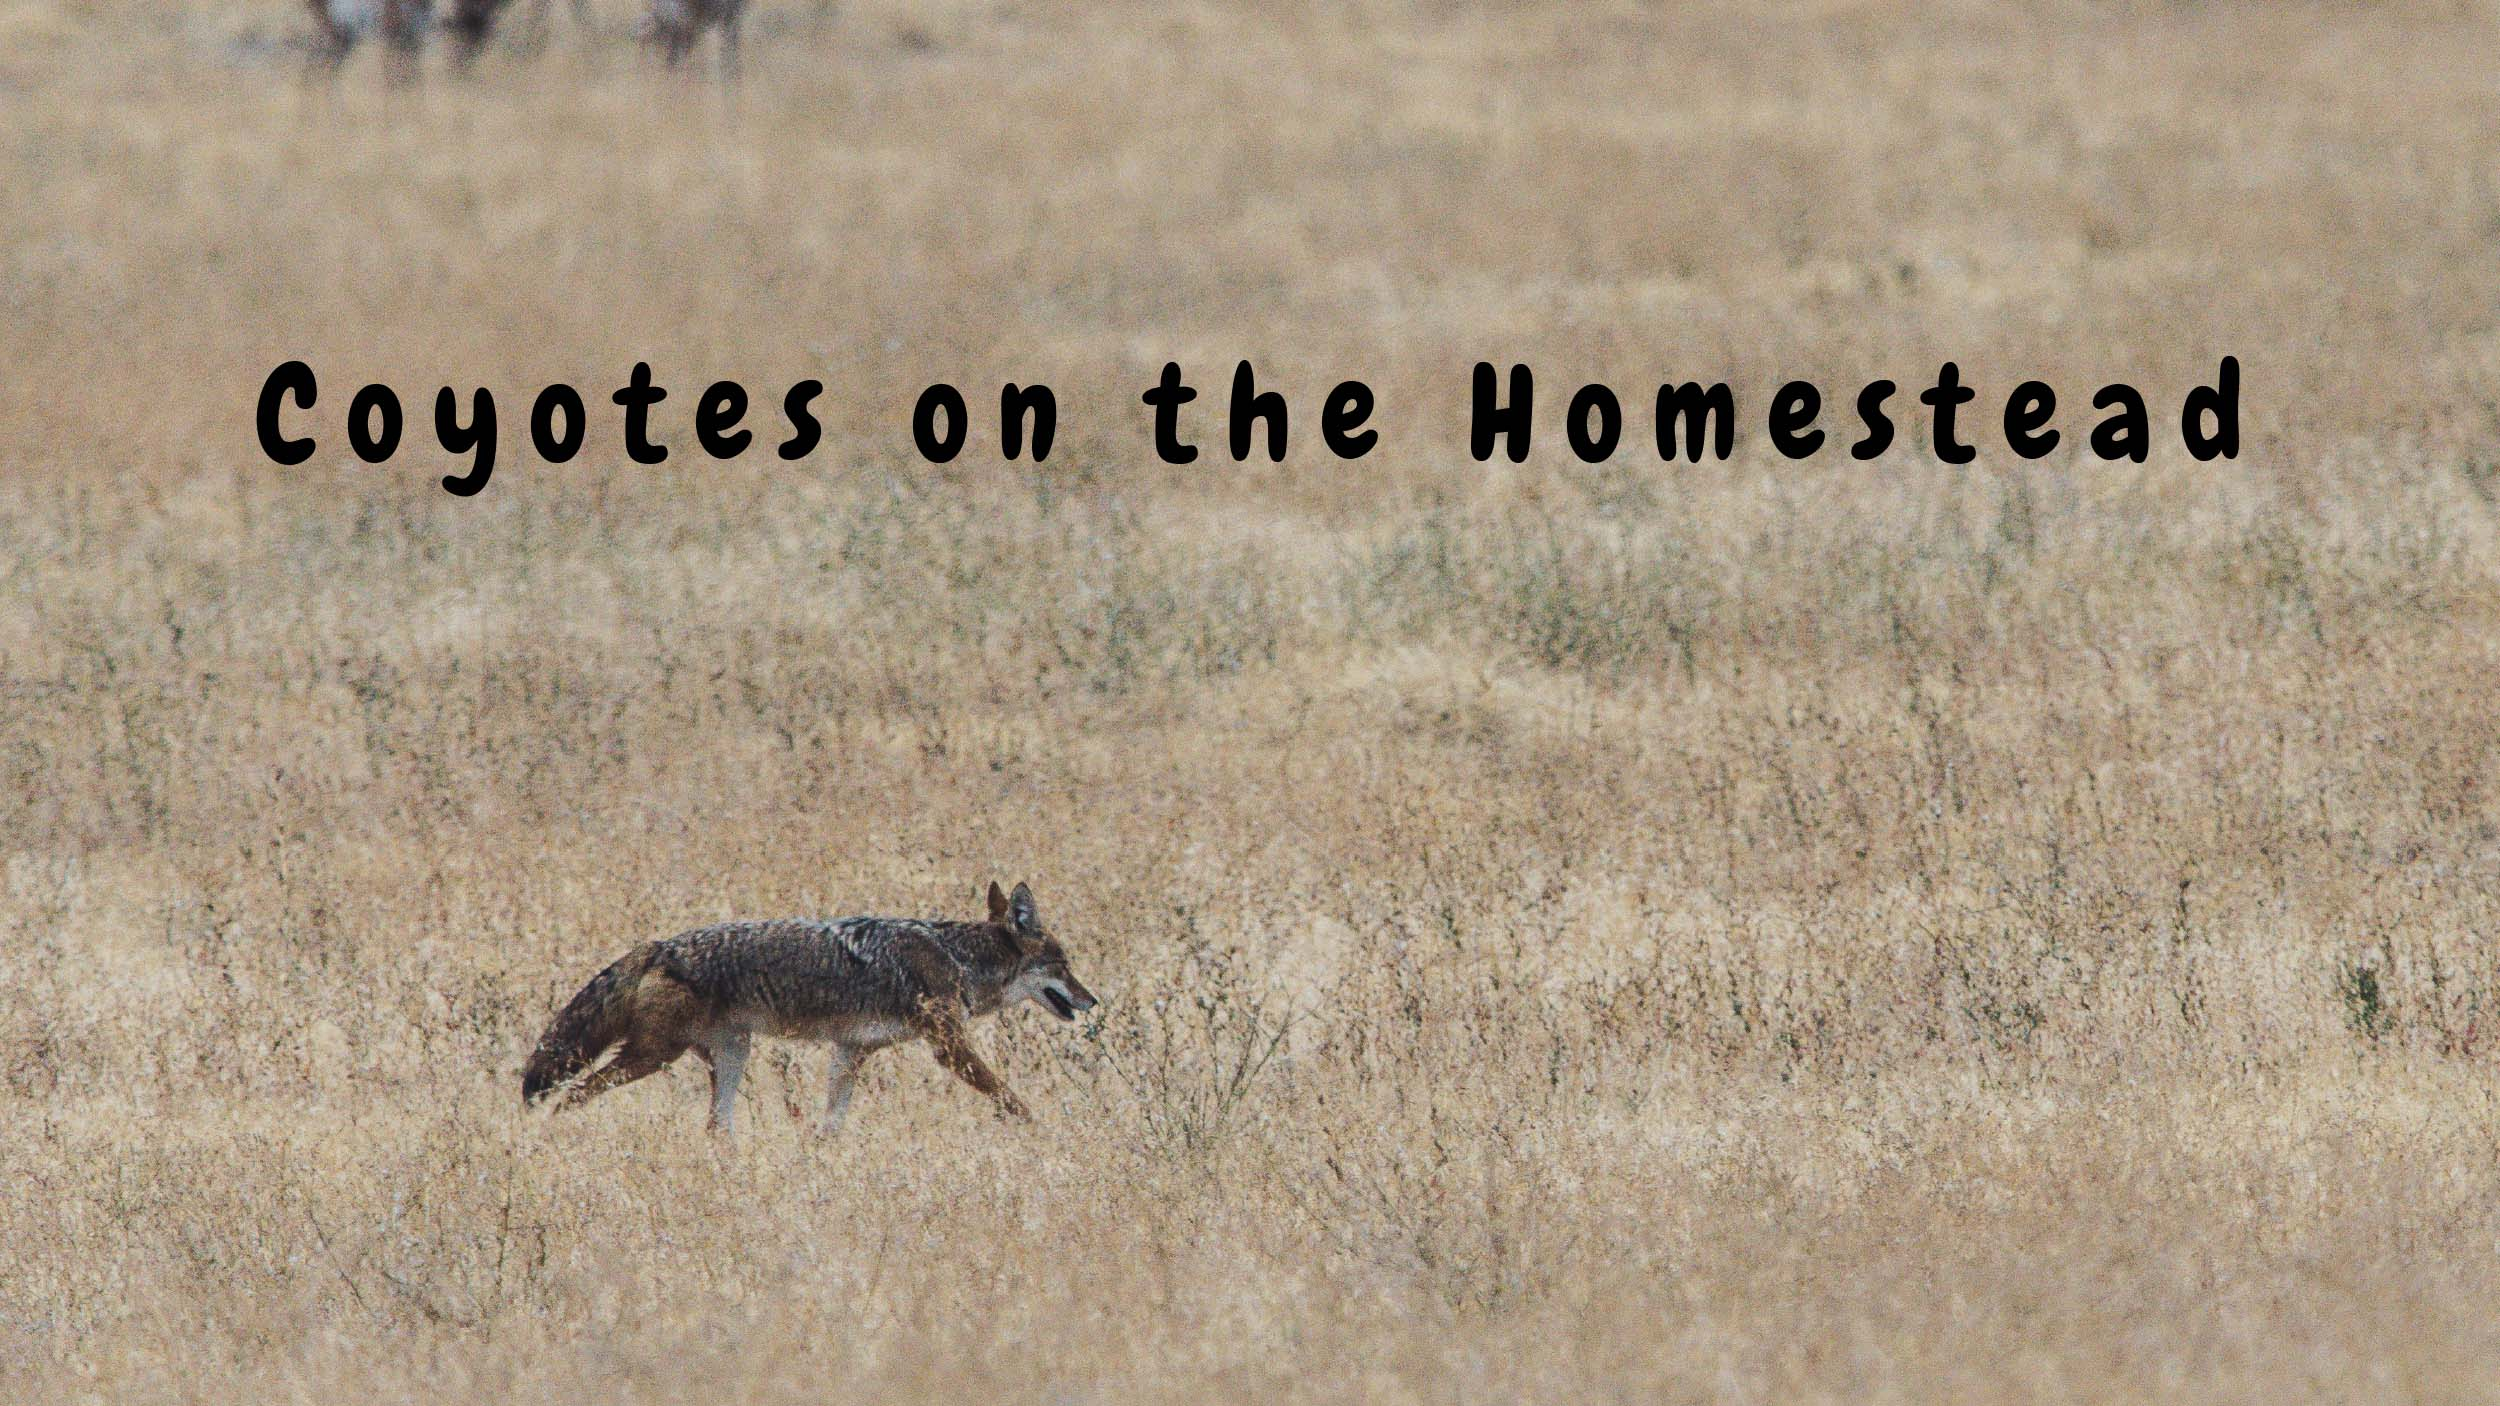 Coyotes on the Homestead